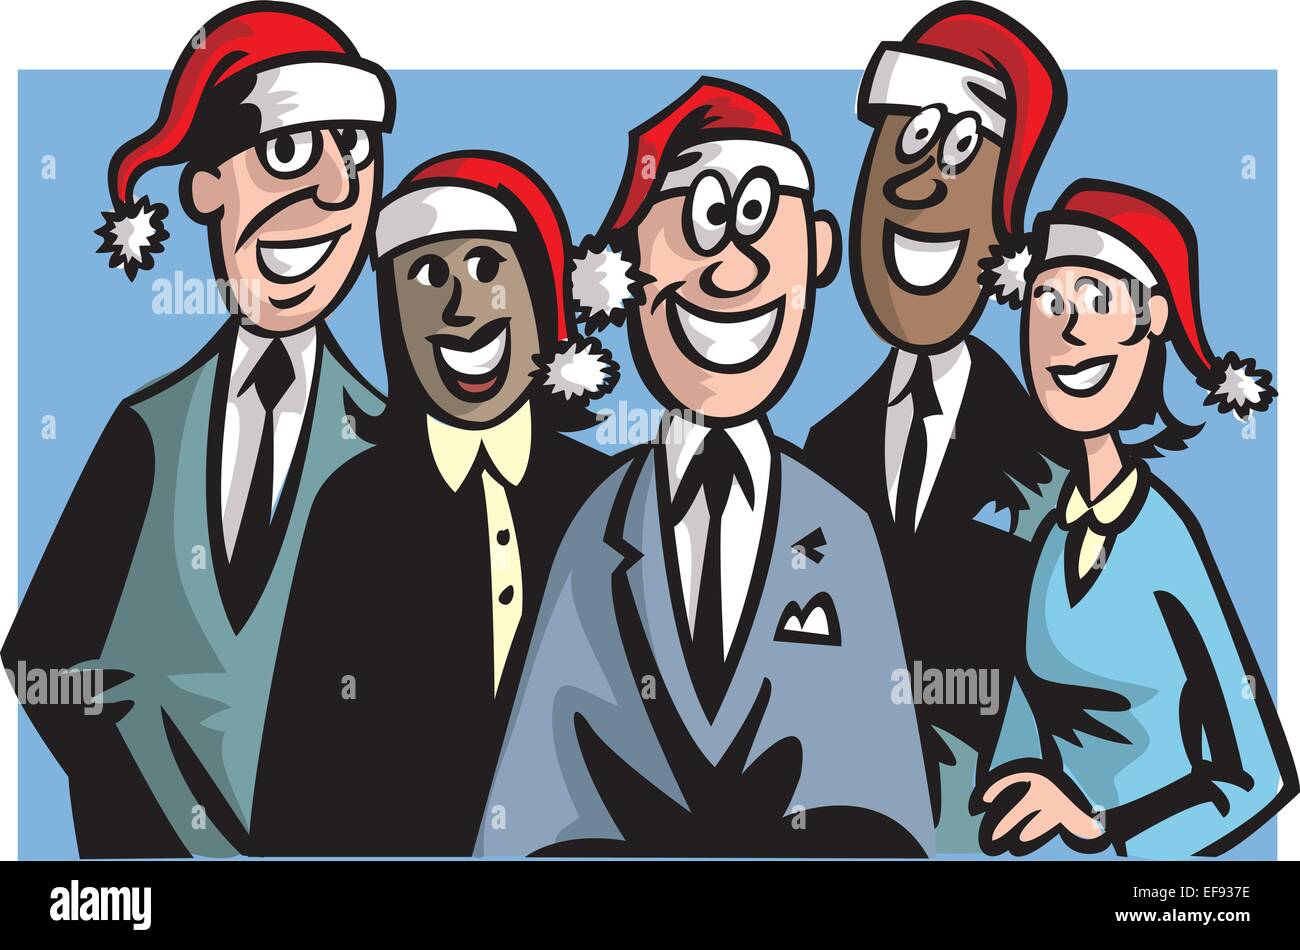 Office Christmas Party Stock Vector Art & Illustration, Vector Image ...